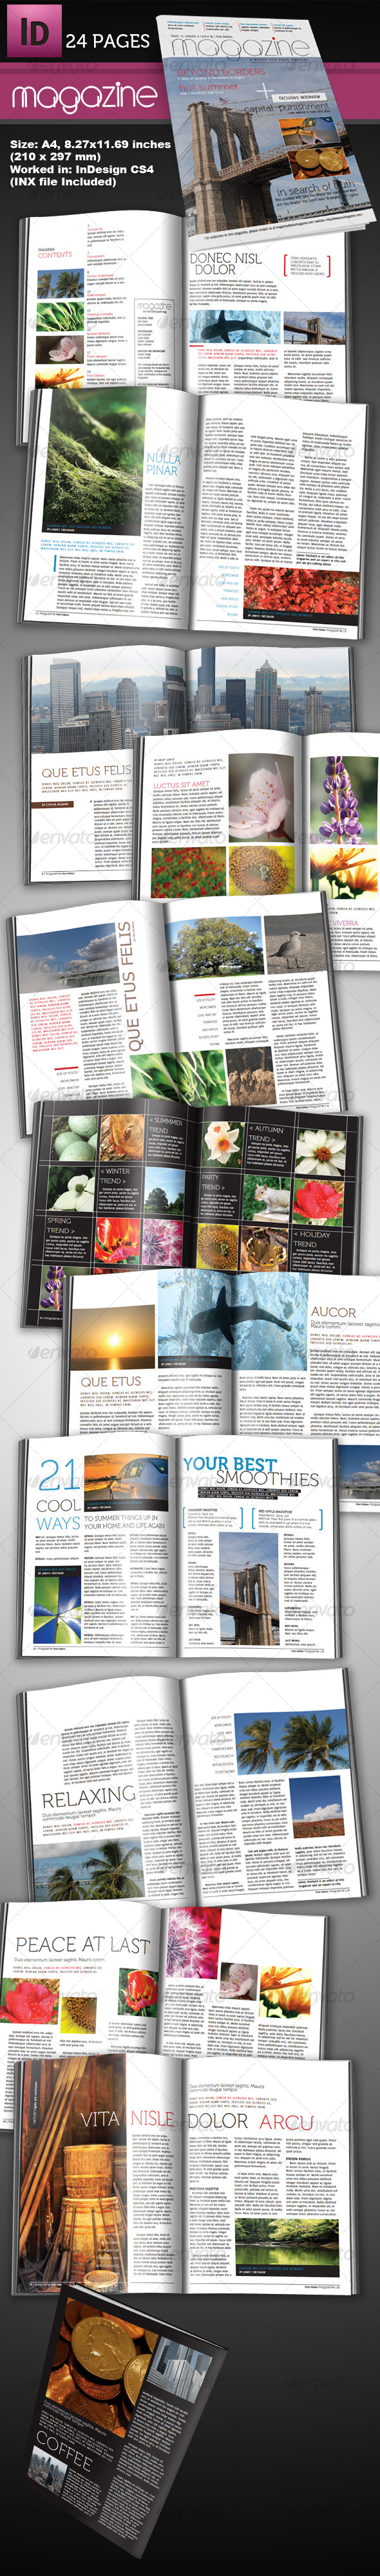 24 Page InDesign Magazine A4 by pro_design | GraphicRiver